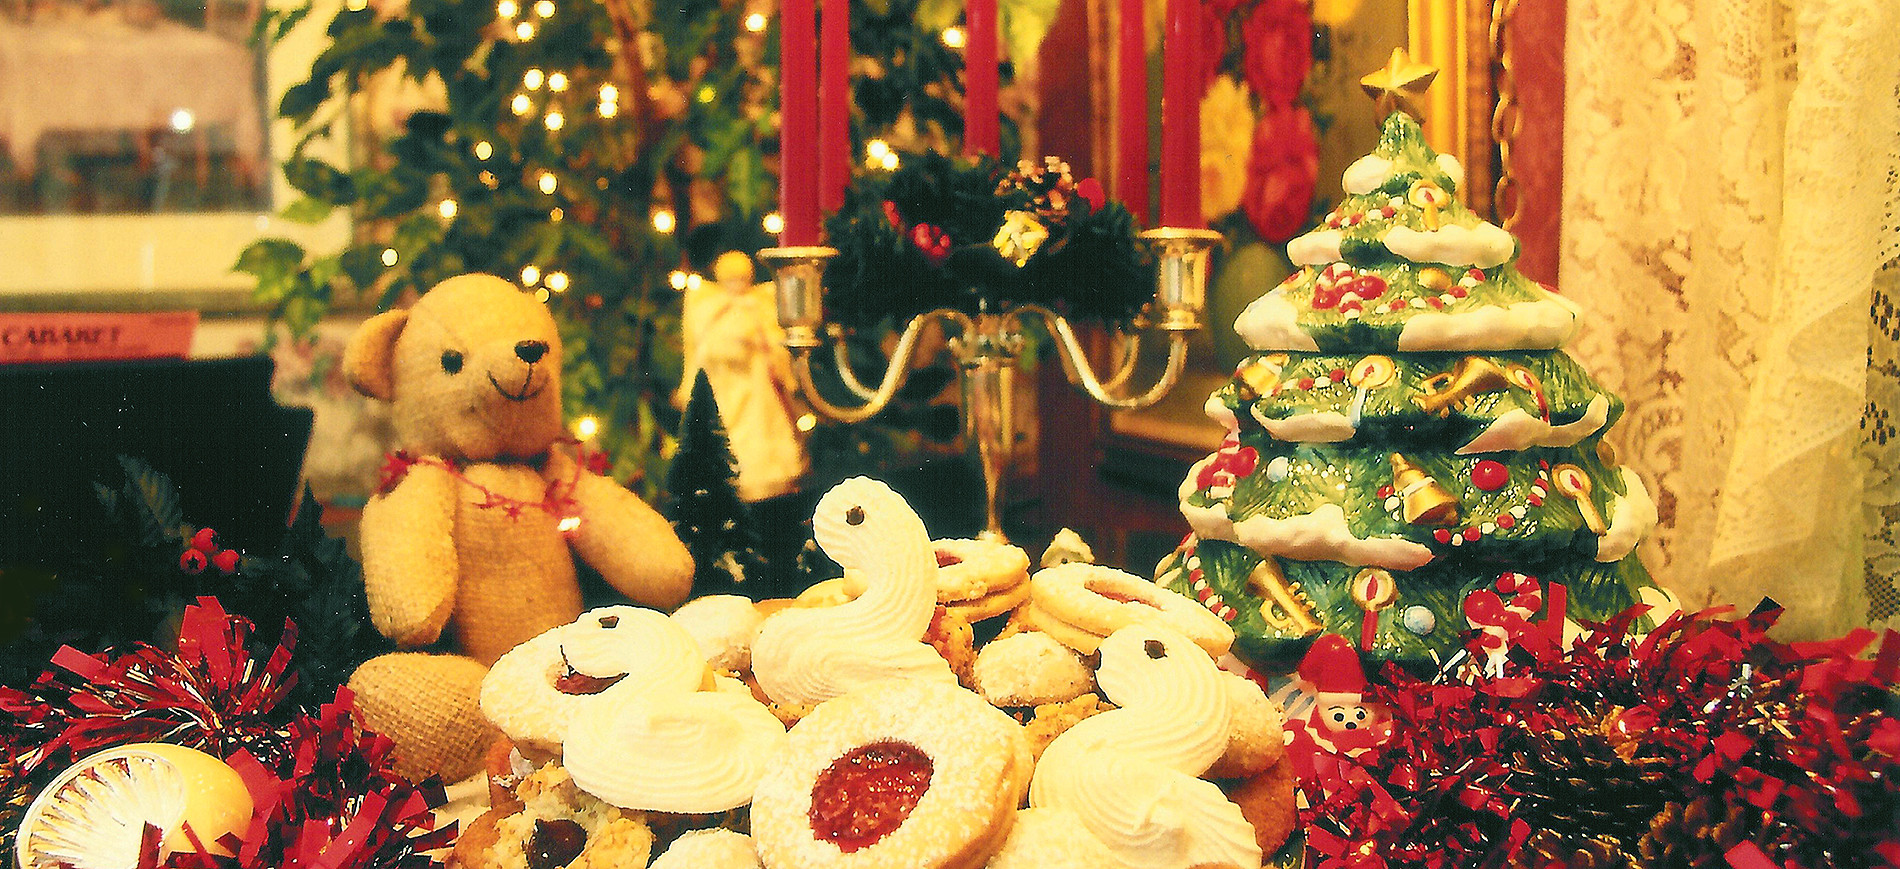 cookies with stuffed bear and Xmas tree